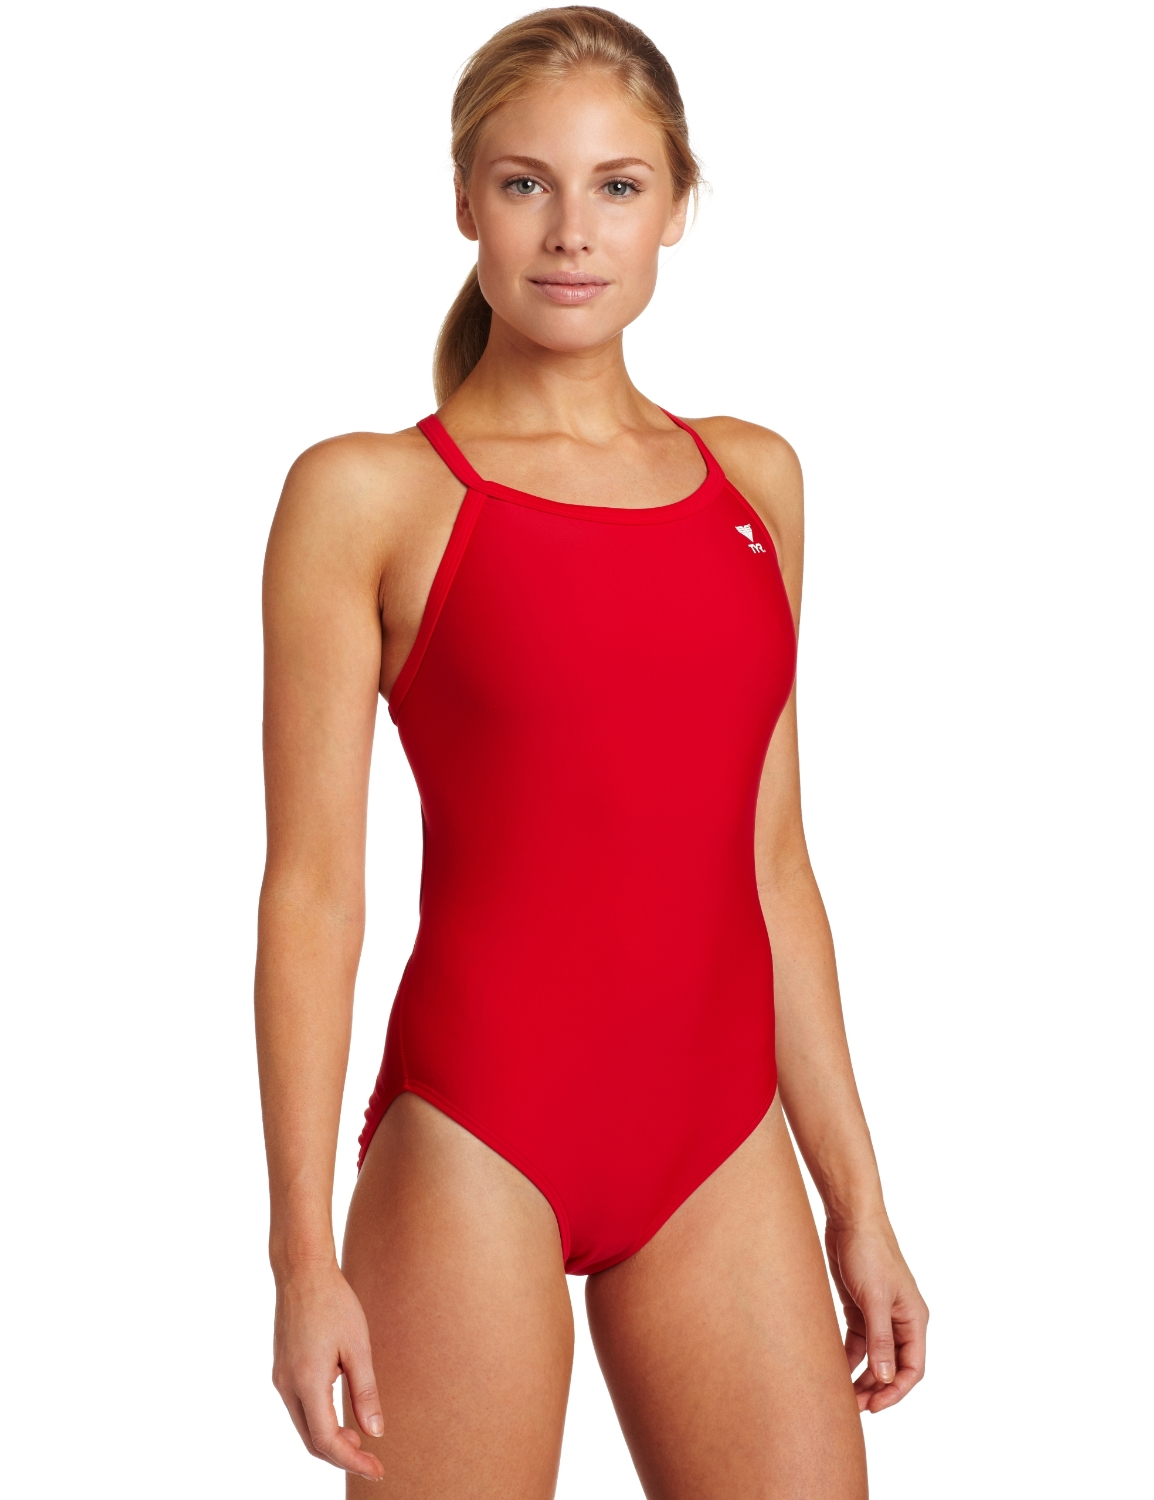 Swimming Suits  Best Swimsuits-6752